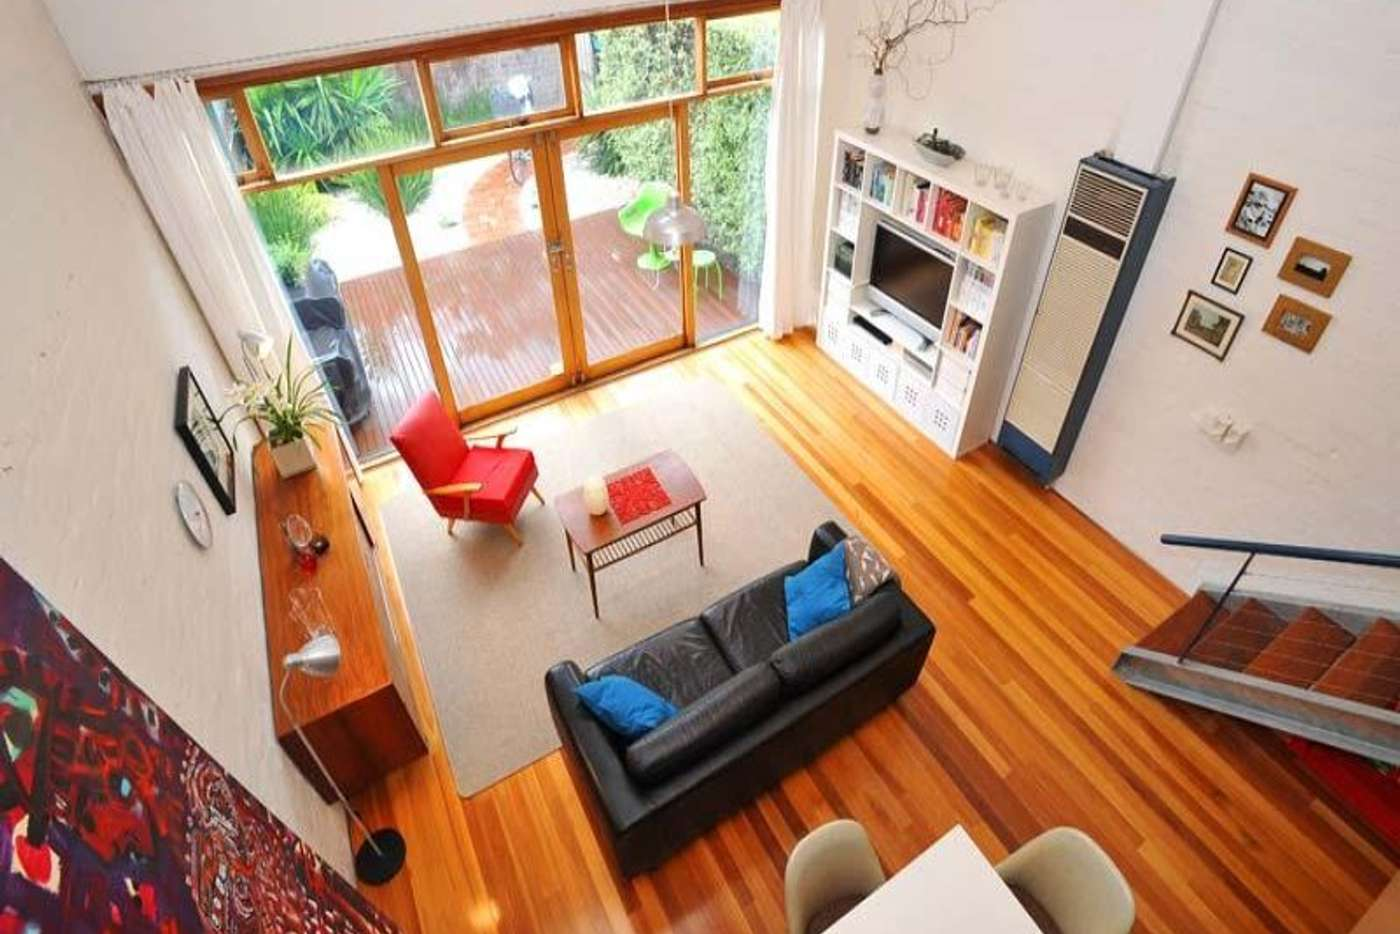 Main view of Homely house listing, 2/87 Ormond Road, Elwood VIC 3184